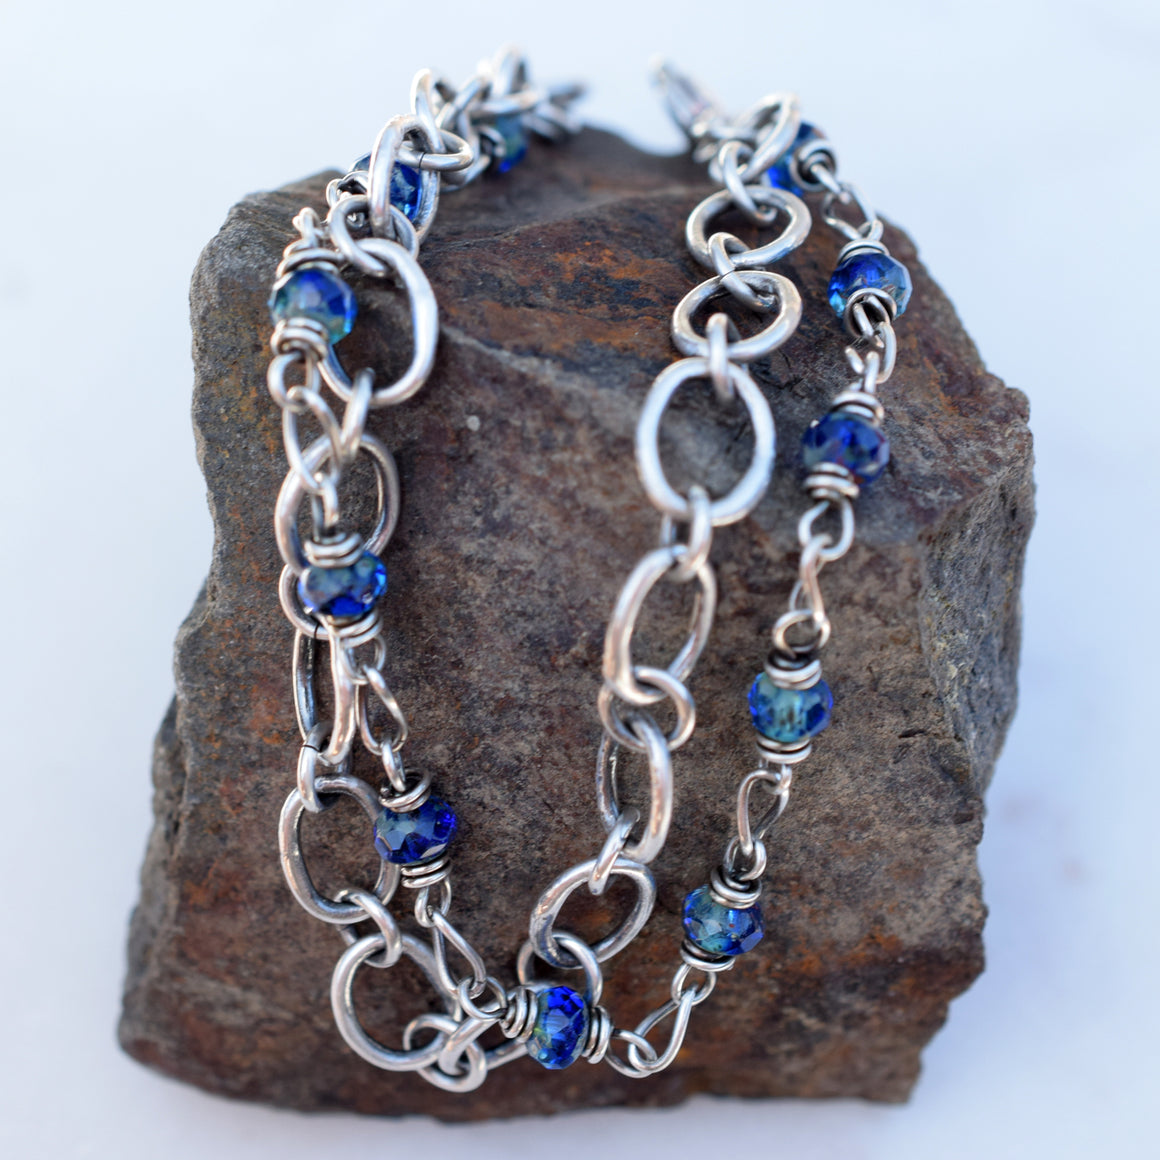 Sapphire Blue Beaded Chain Bracelet. Double Strand. Czech Glass. Fine Silver. Boho Style.